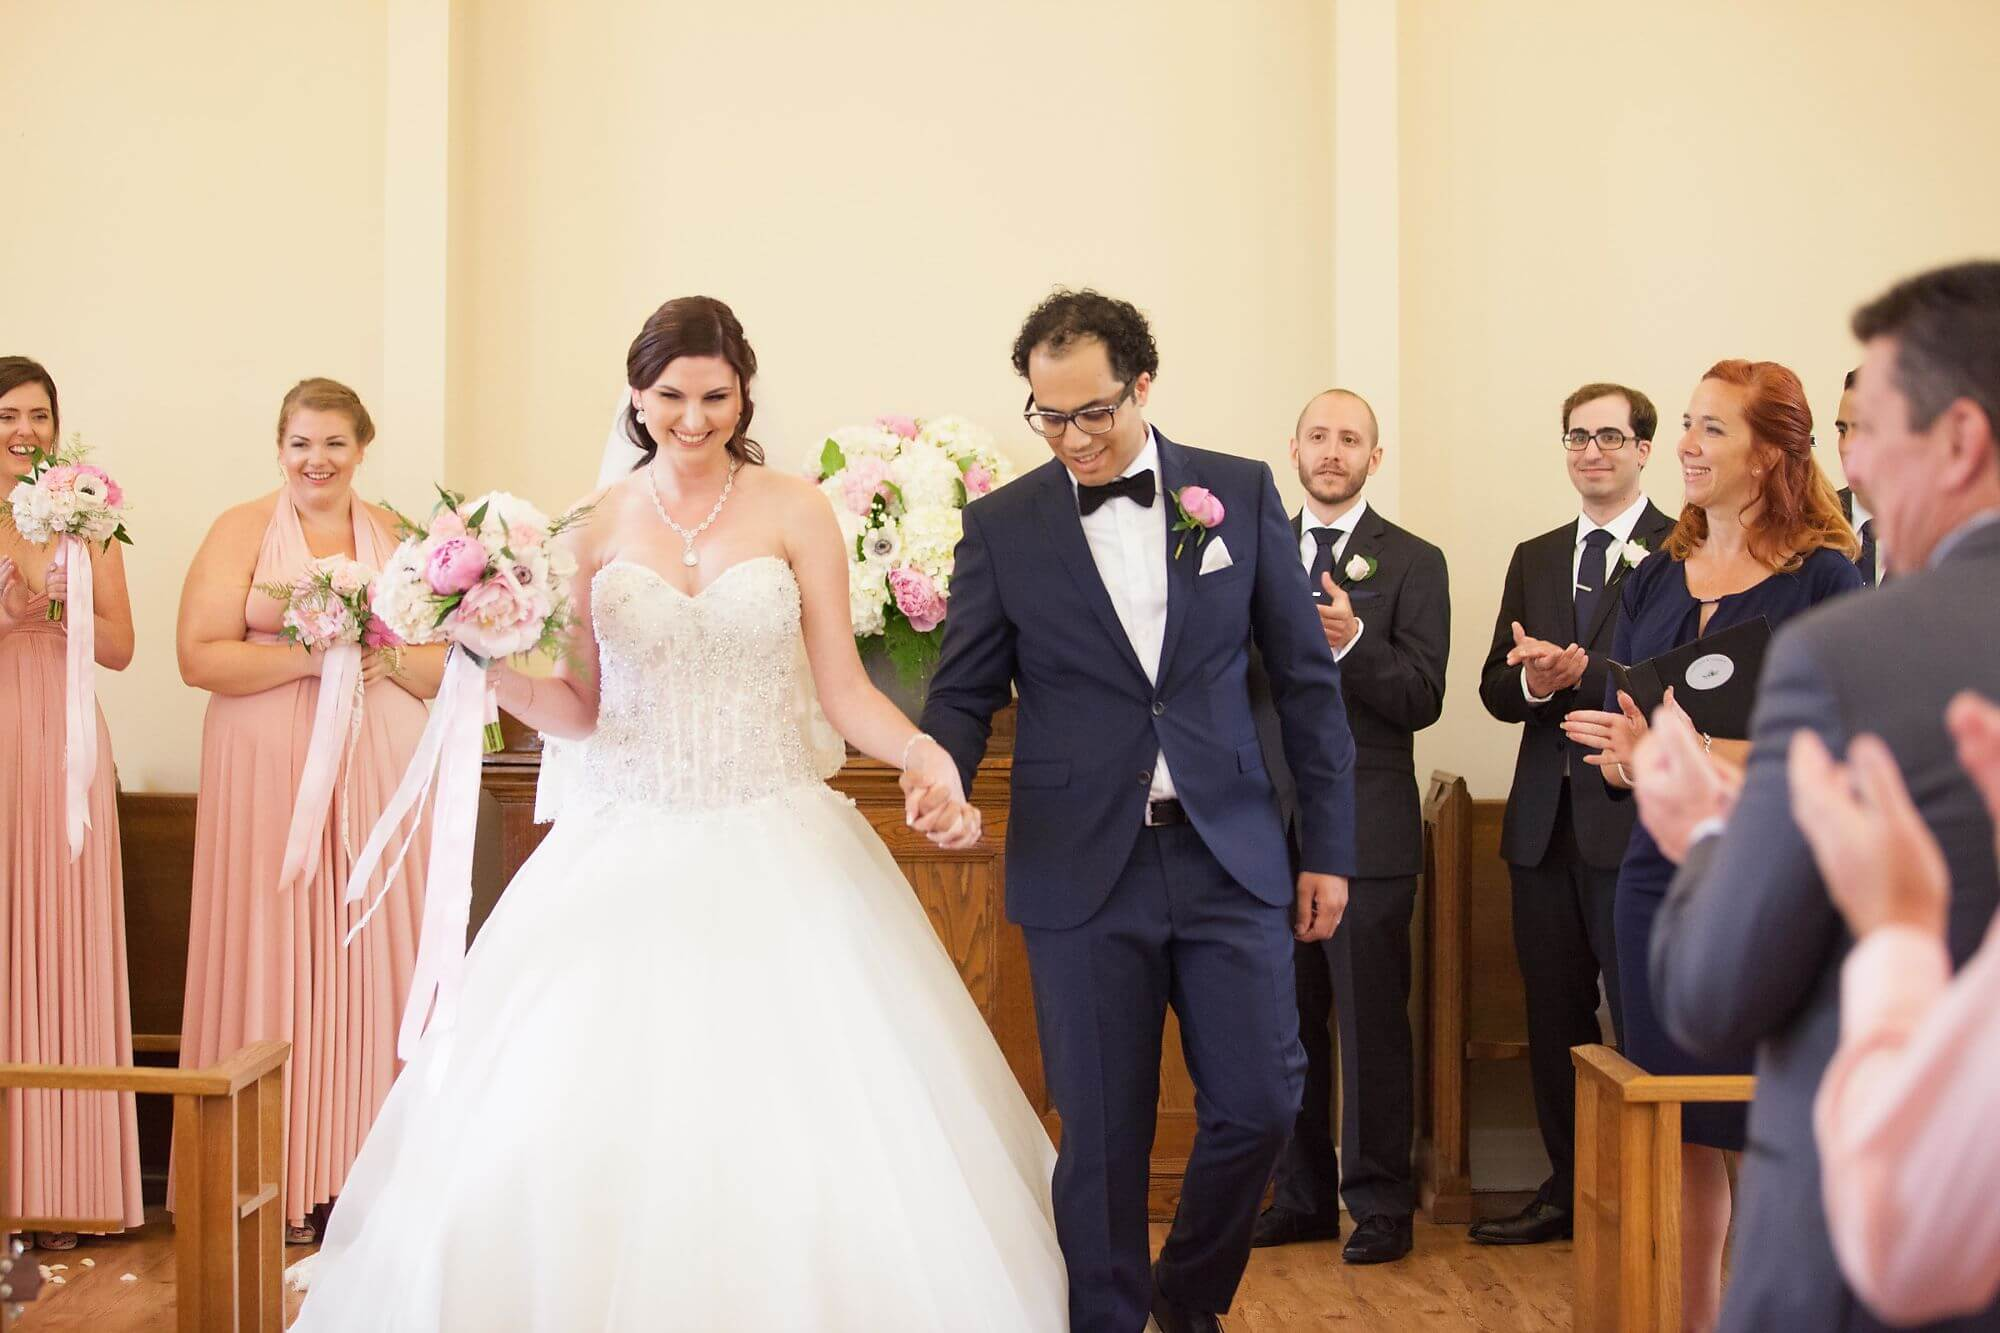 Bride and groom leaving altar after just getting married at Queenston Chapel - Niagara wedding - Historia Wedding and Event Planning